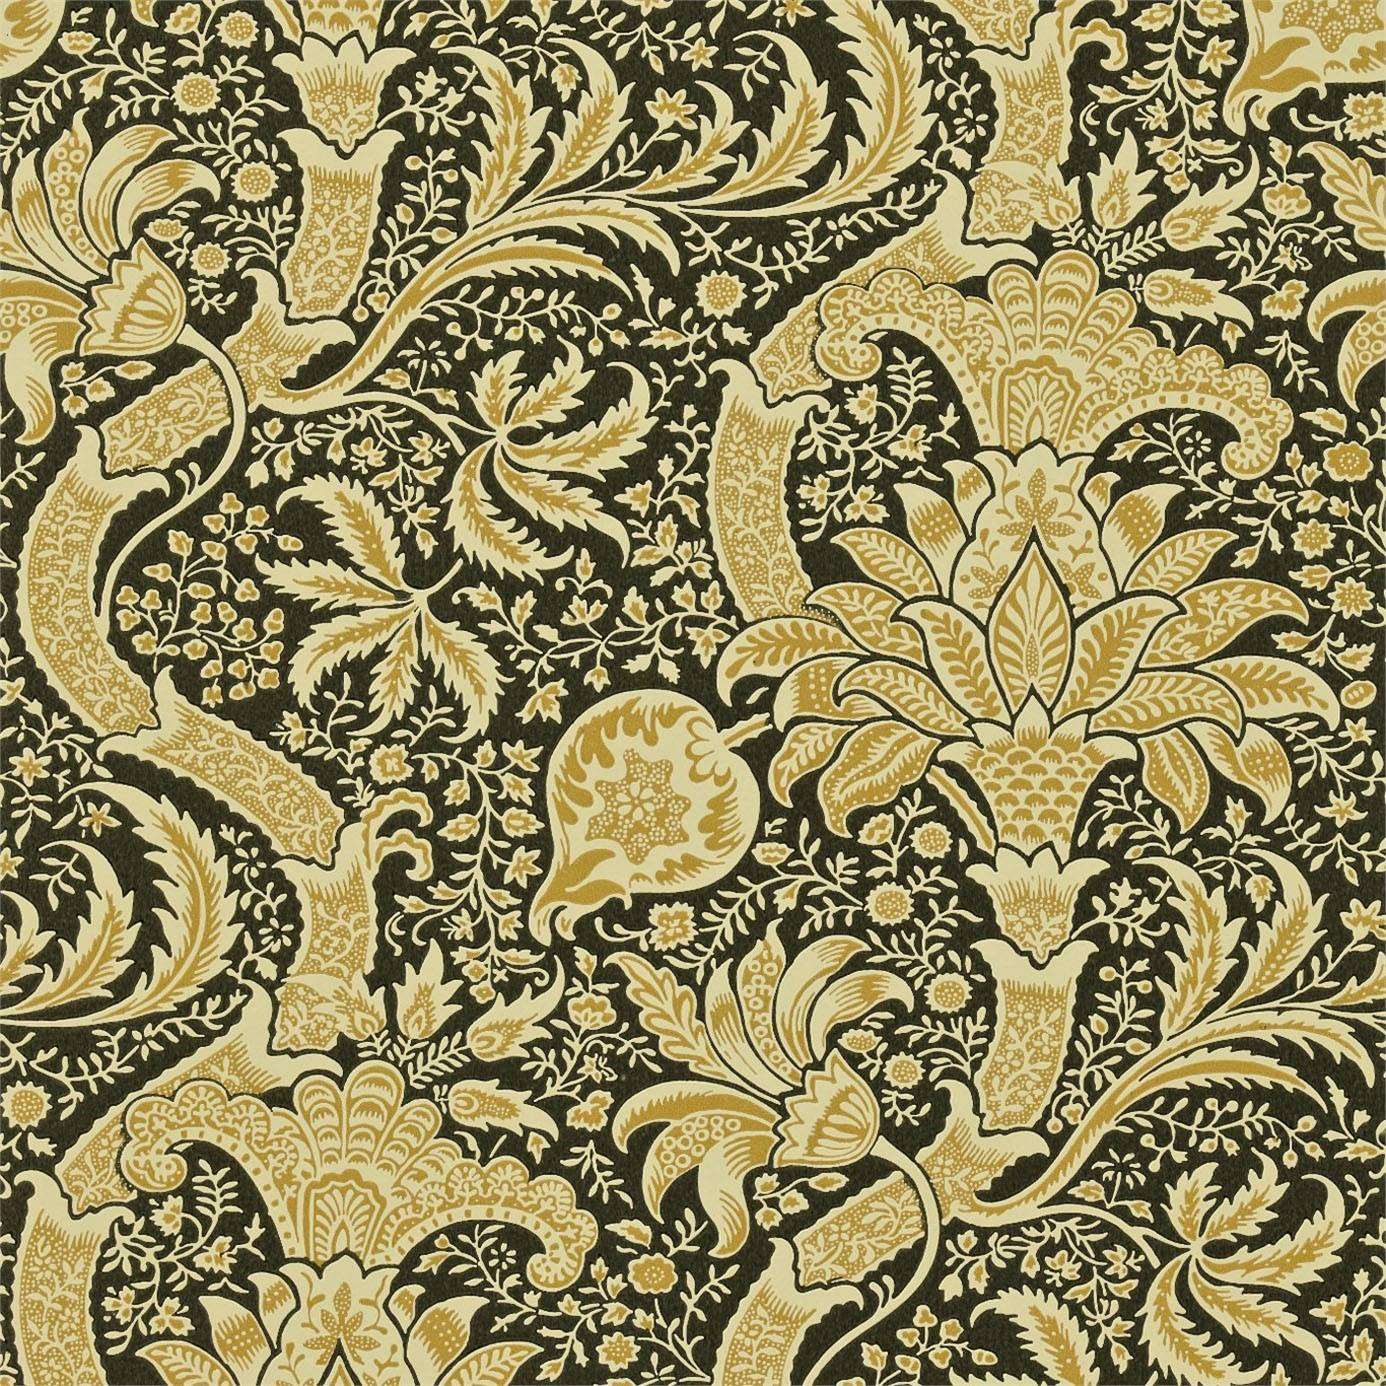 1386x1386 Indian Wallpaper - Gold/Black (DMOWIN101) - William Morris & Co ...